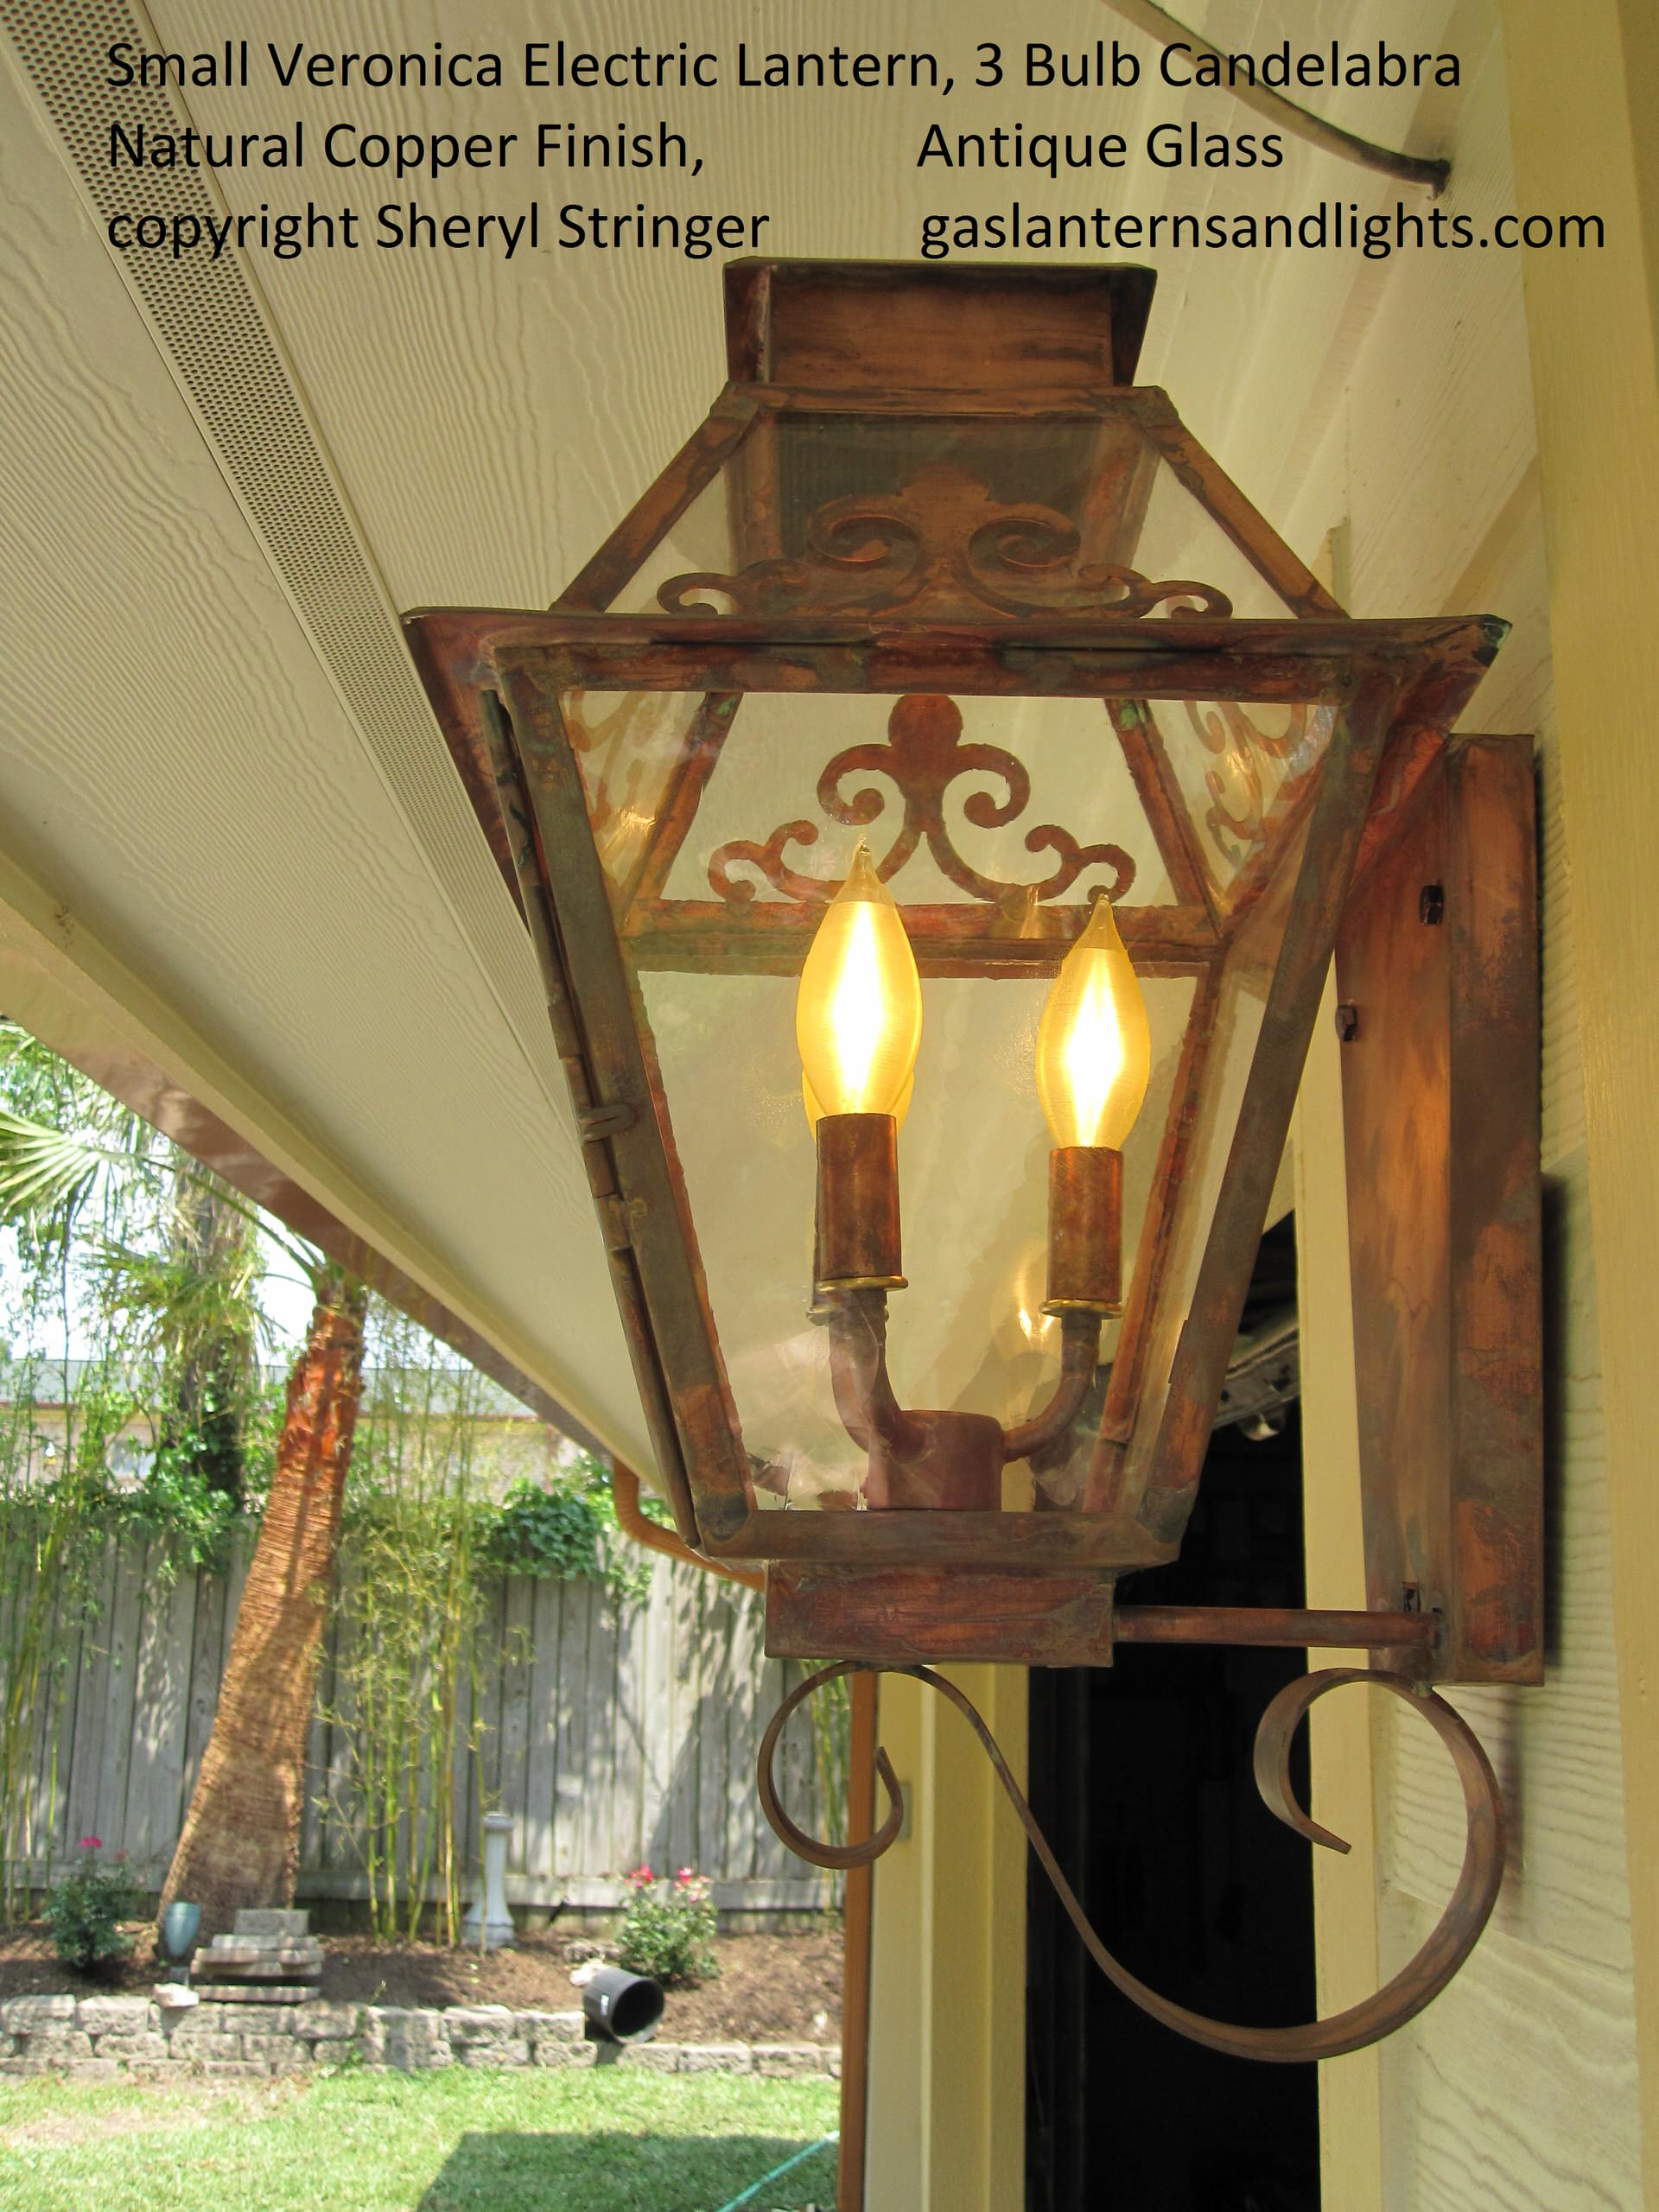 Glass Options for Gas Lanterns by Sheryl Stringer